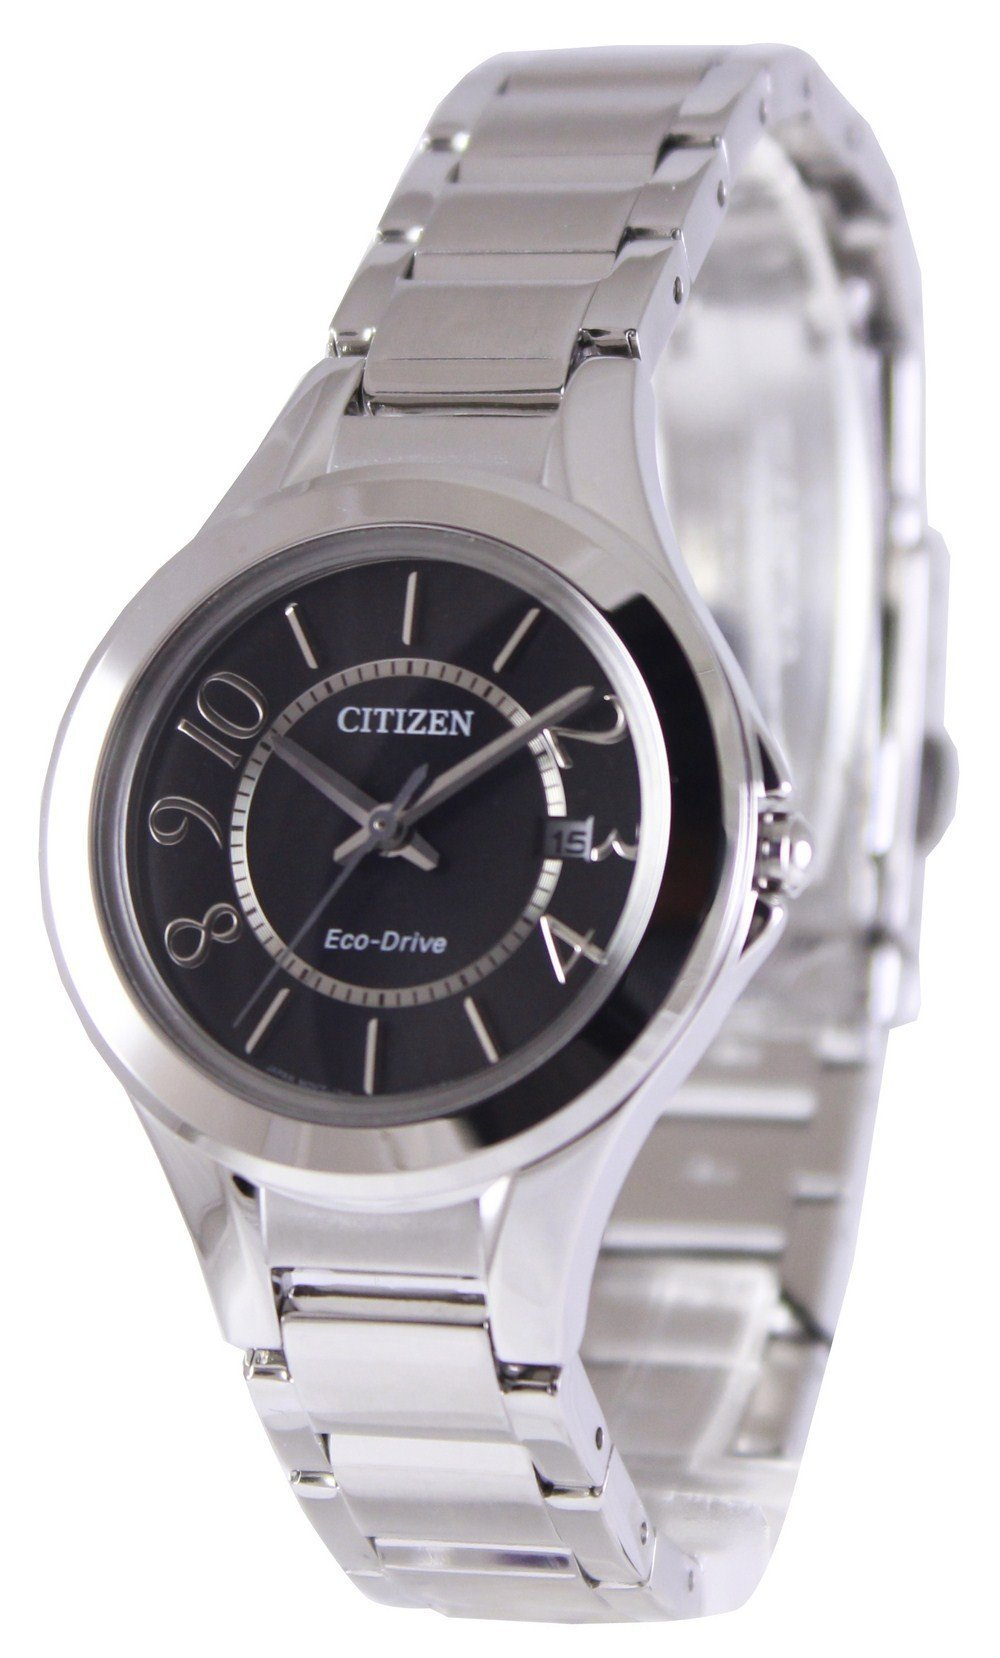 Citizen Eco-Drive Power Reserve FE1020-53E Women's Watch